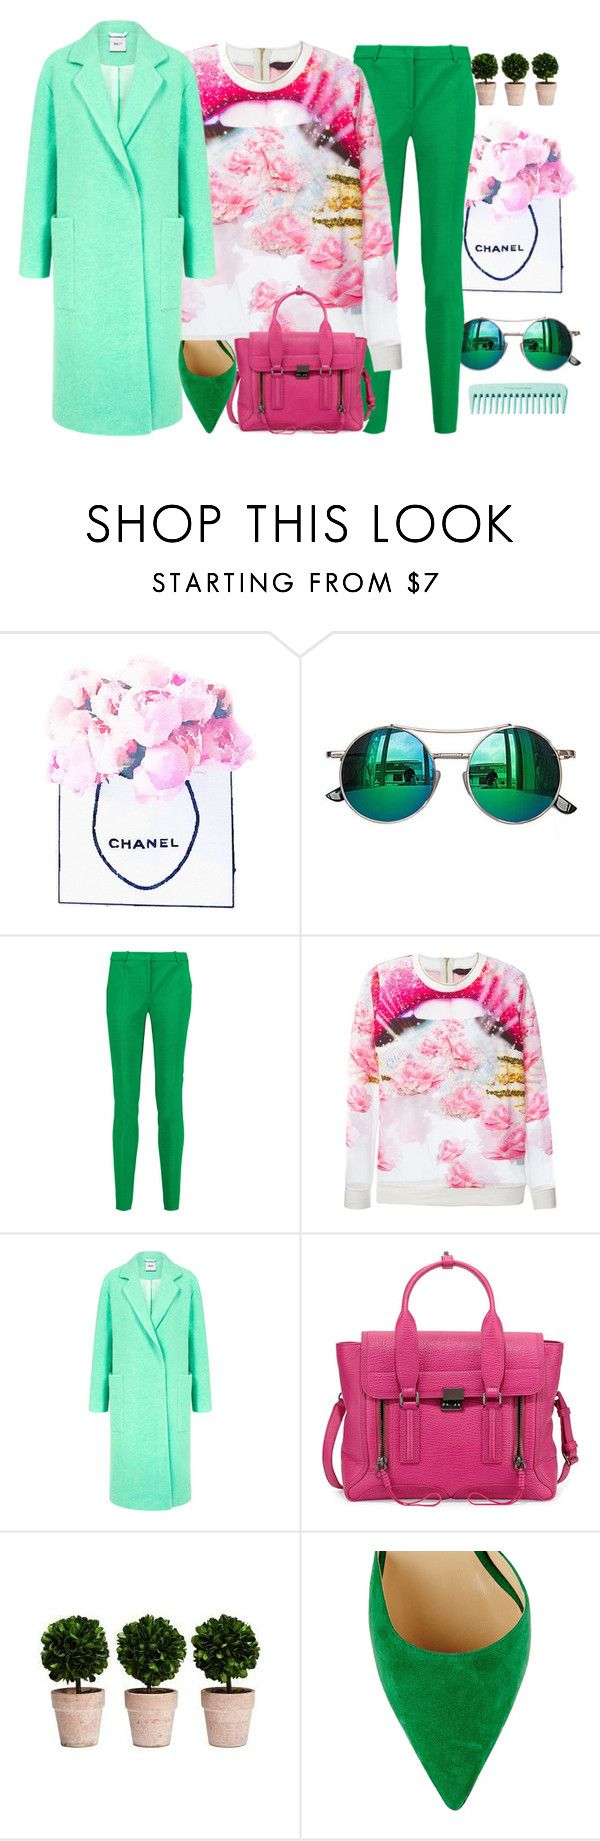 """pastel"" by iubescvara ❤ liked on Polyvore featuring Chanel, Chicnova Fashion, Emilio Pucci, Manish Arora, Edit, 3.1 Phillip Lim, Jimmy Choo, women's clothing, women's fashion and women"